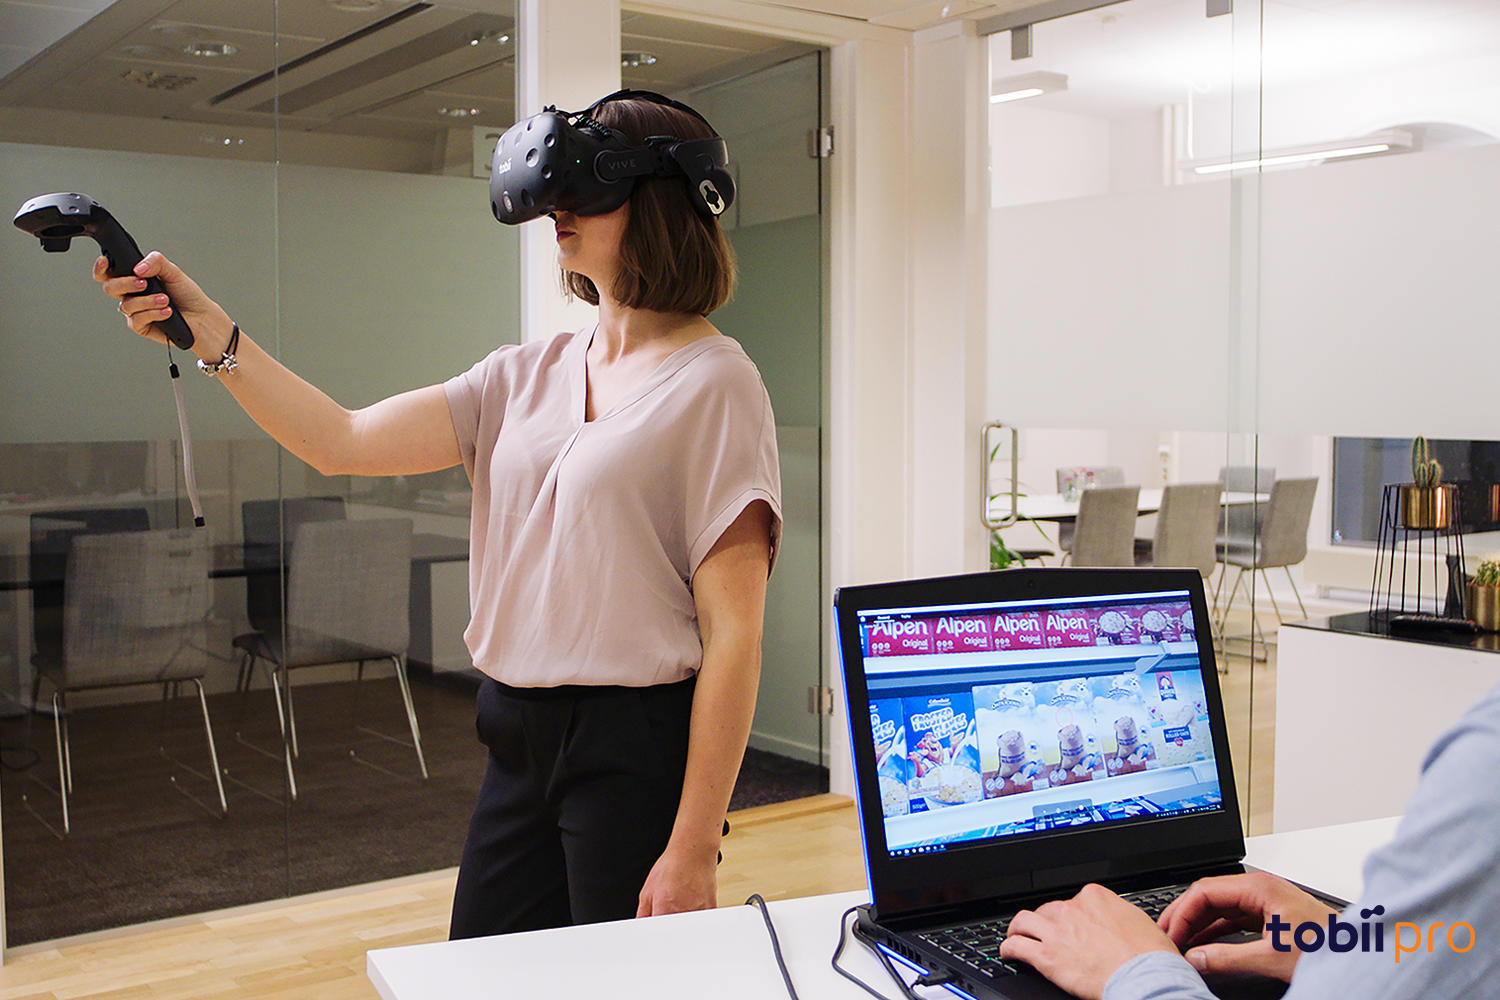 tobiipro-vr-analytics-for-package-design-testing-invr-3-2